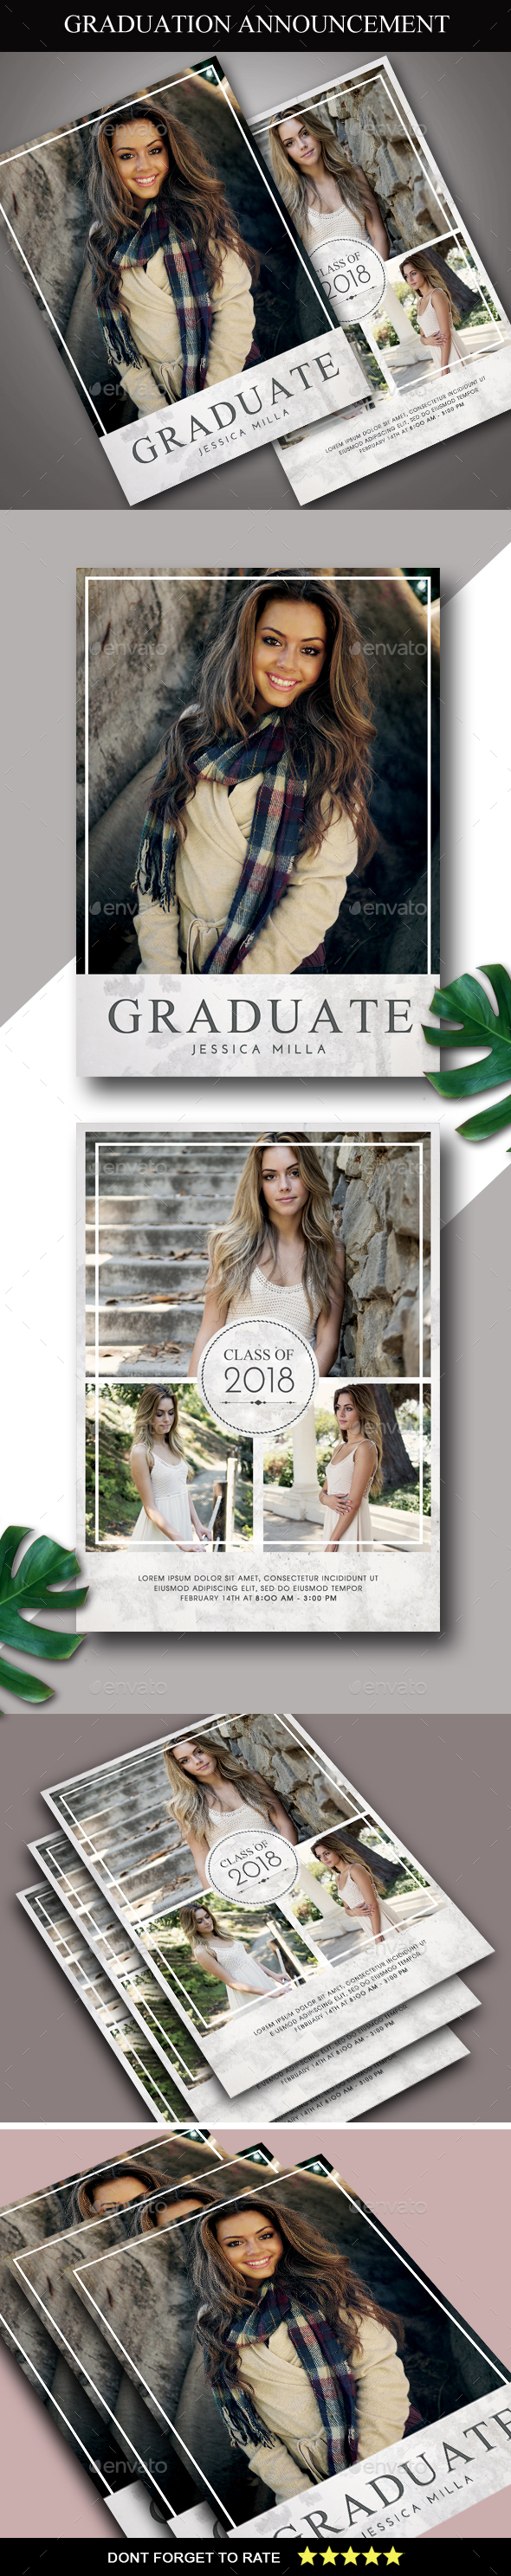 Graduation Announcement Card - Cards & Invites Print Templates